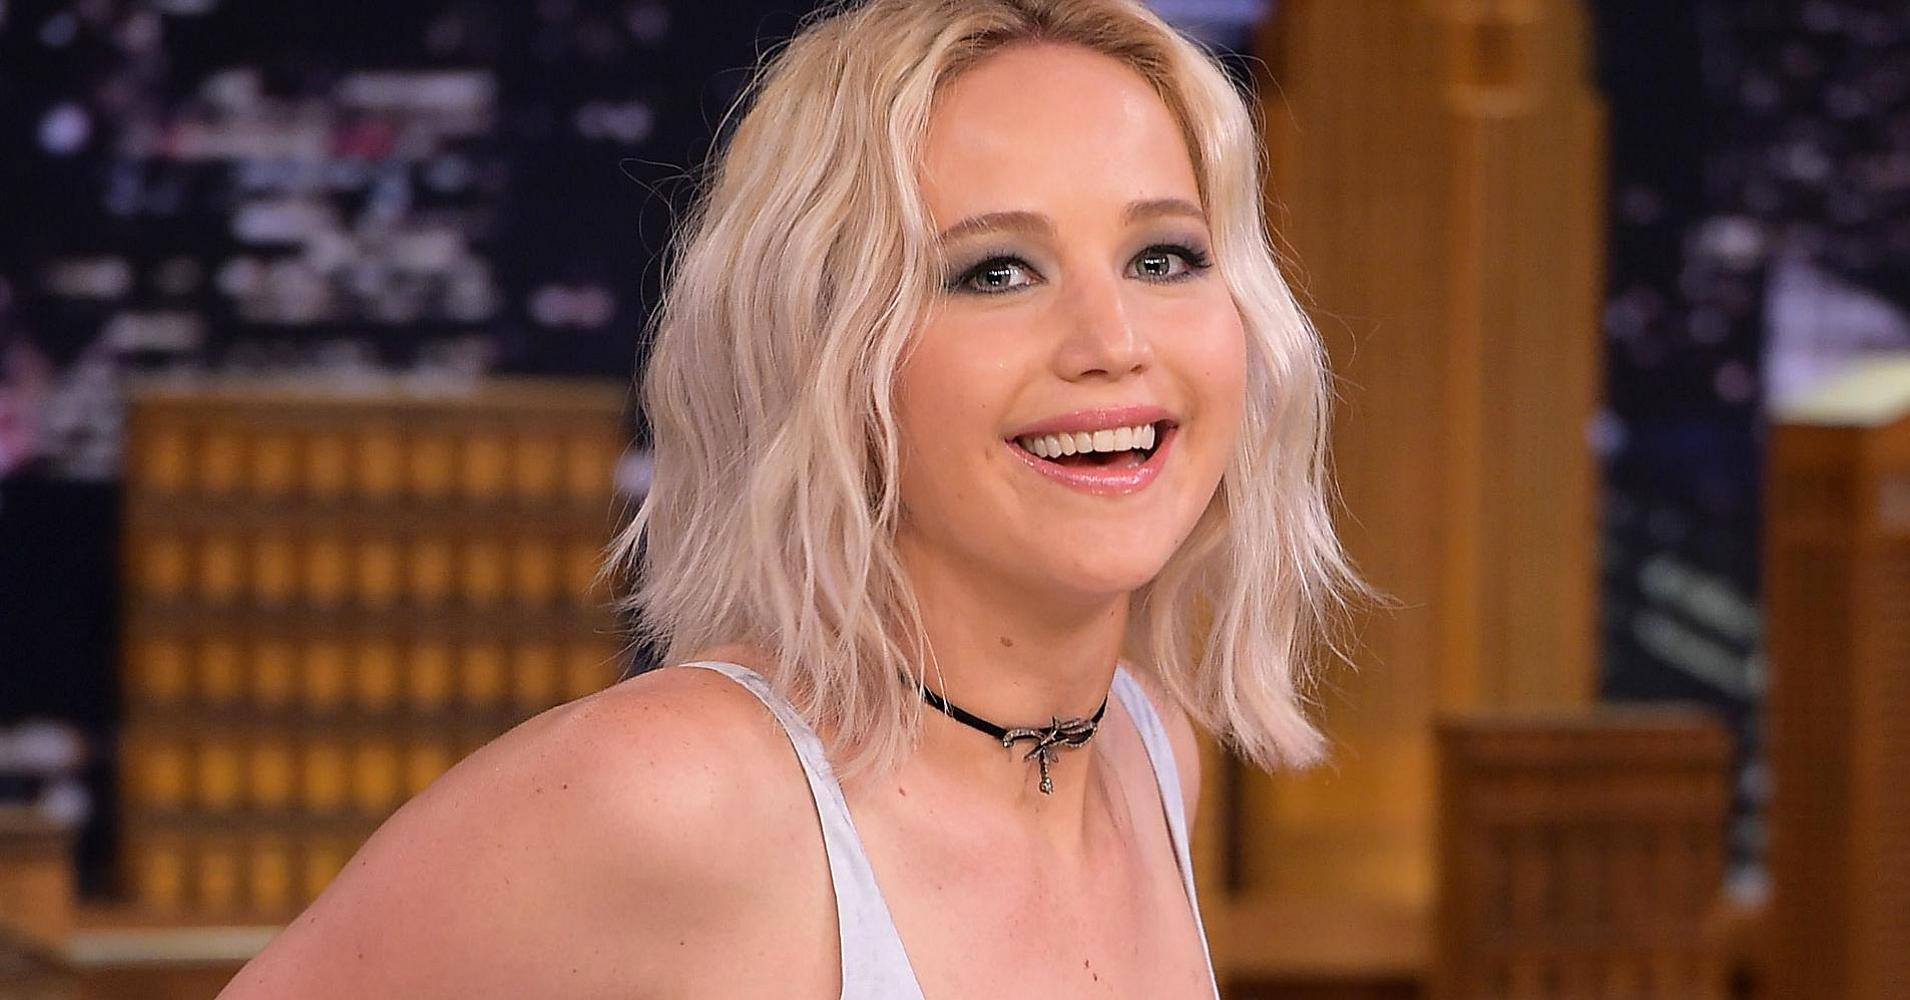 https://gogomagazine.it/wp-content/uploads/2018/02/jennifer_lawrence-02.jpg